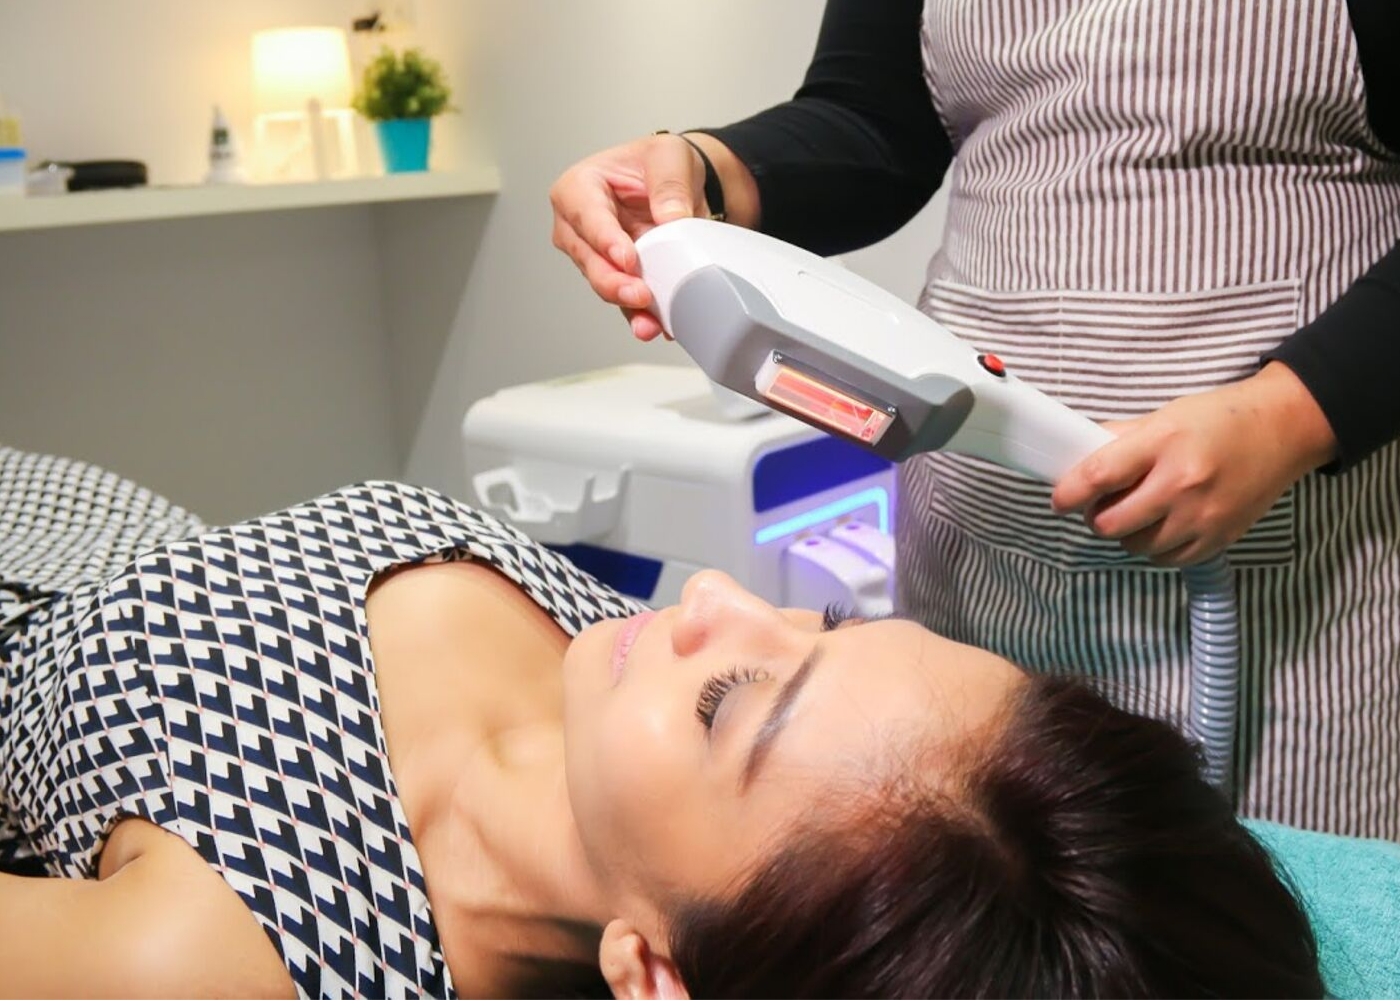 Wellaholic | Facial reviews in Singapore